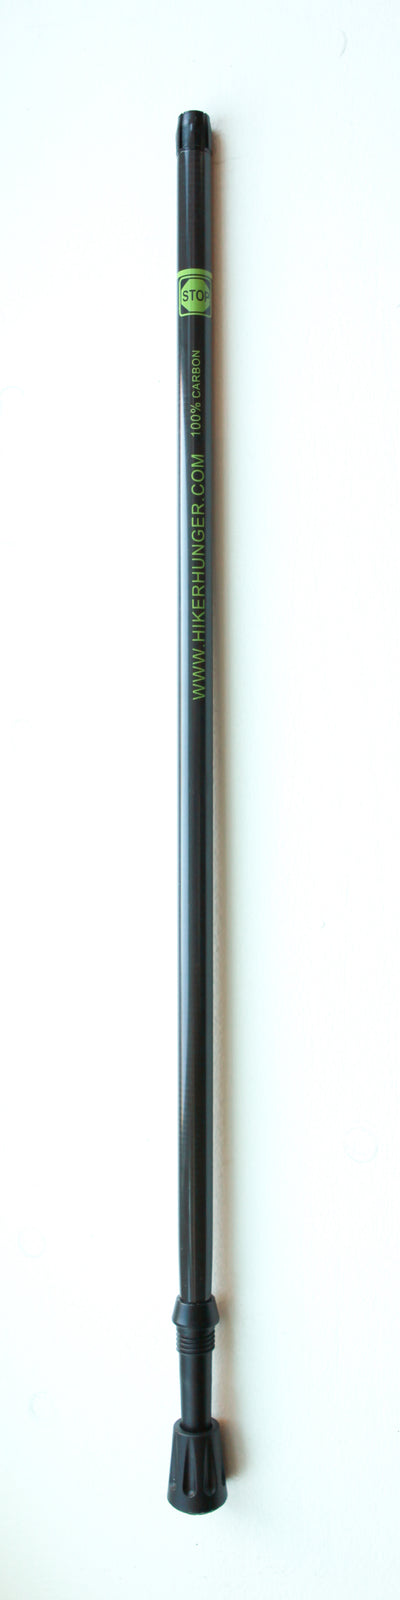 Reusable Carbon Fiber Trekking Pole Replacement Sections